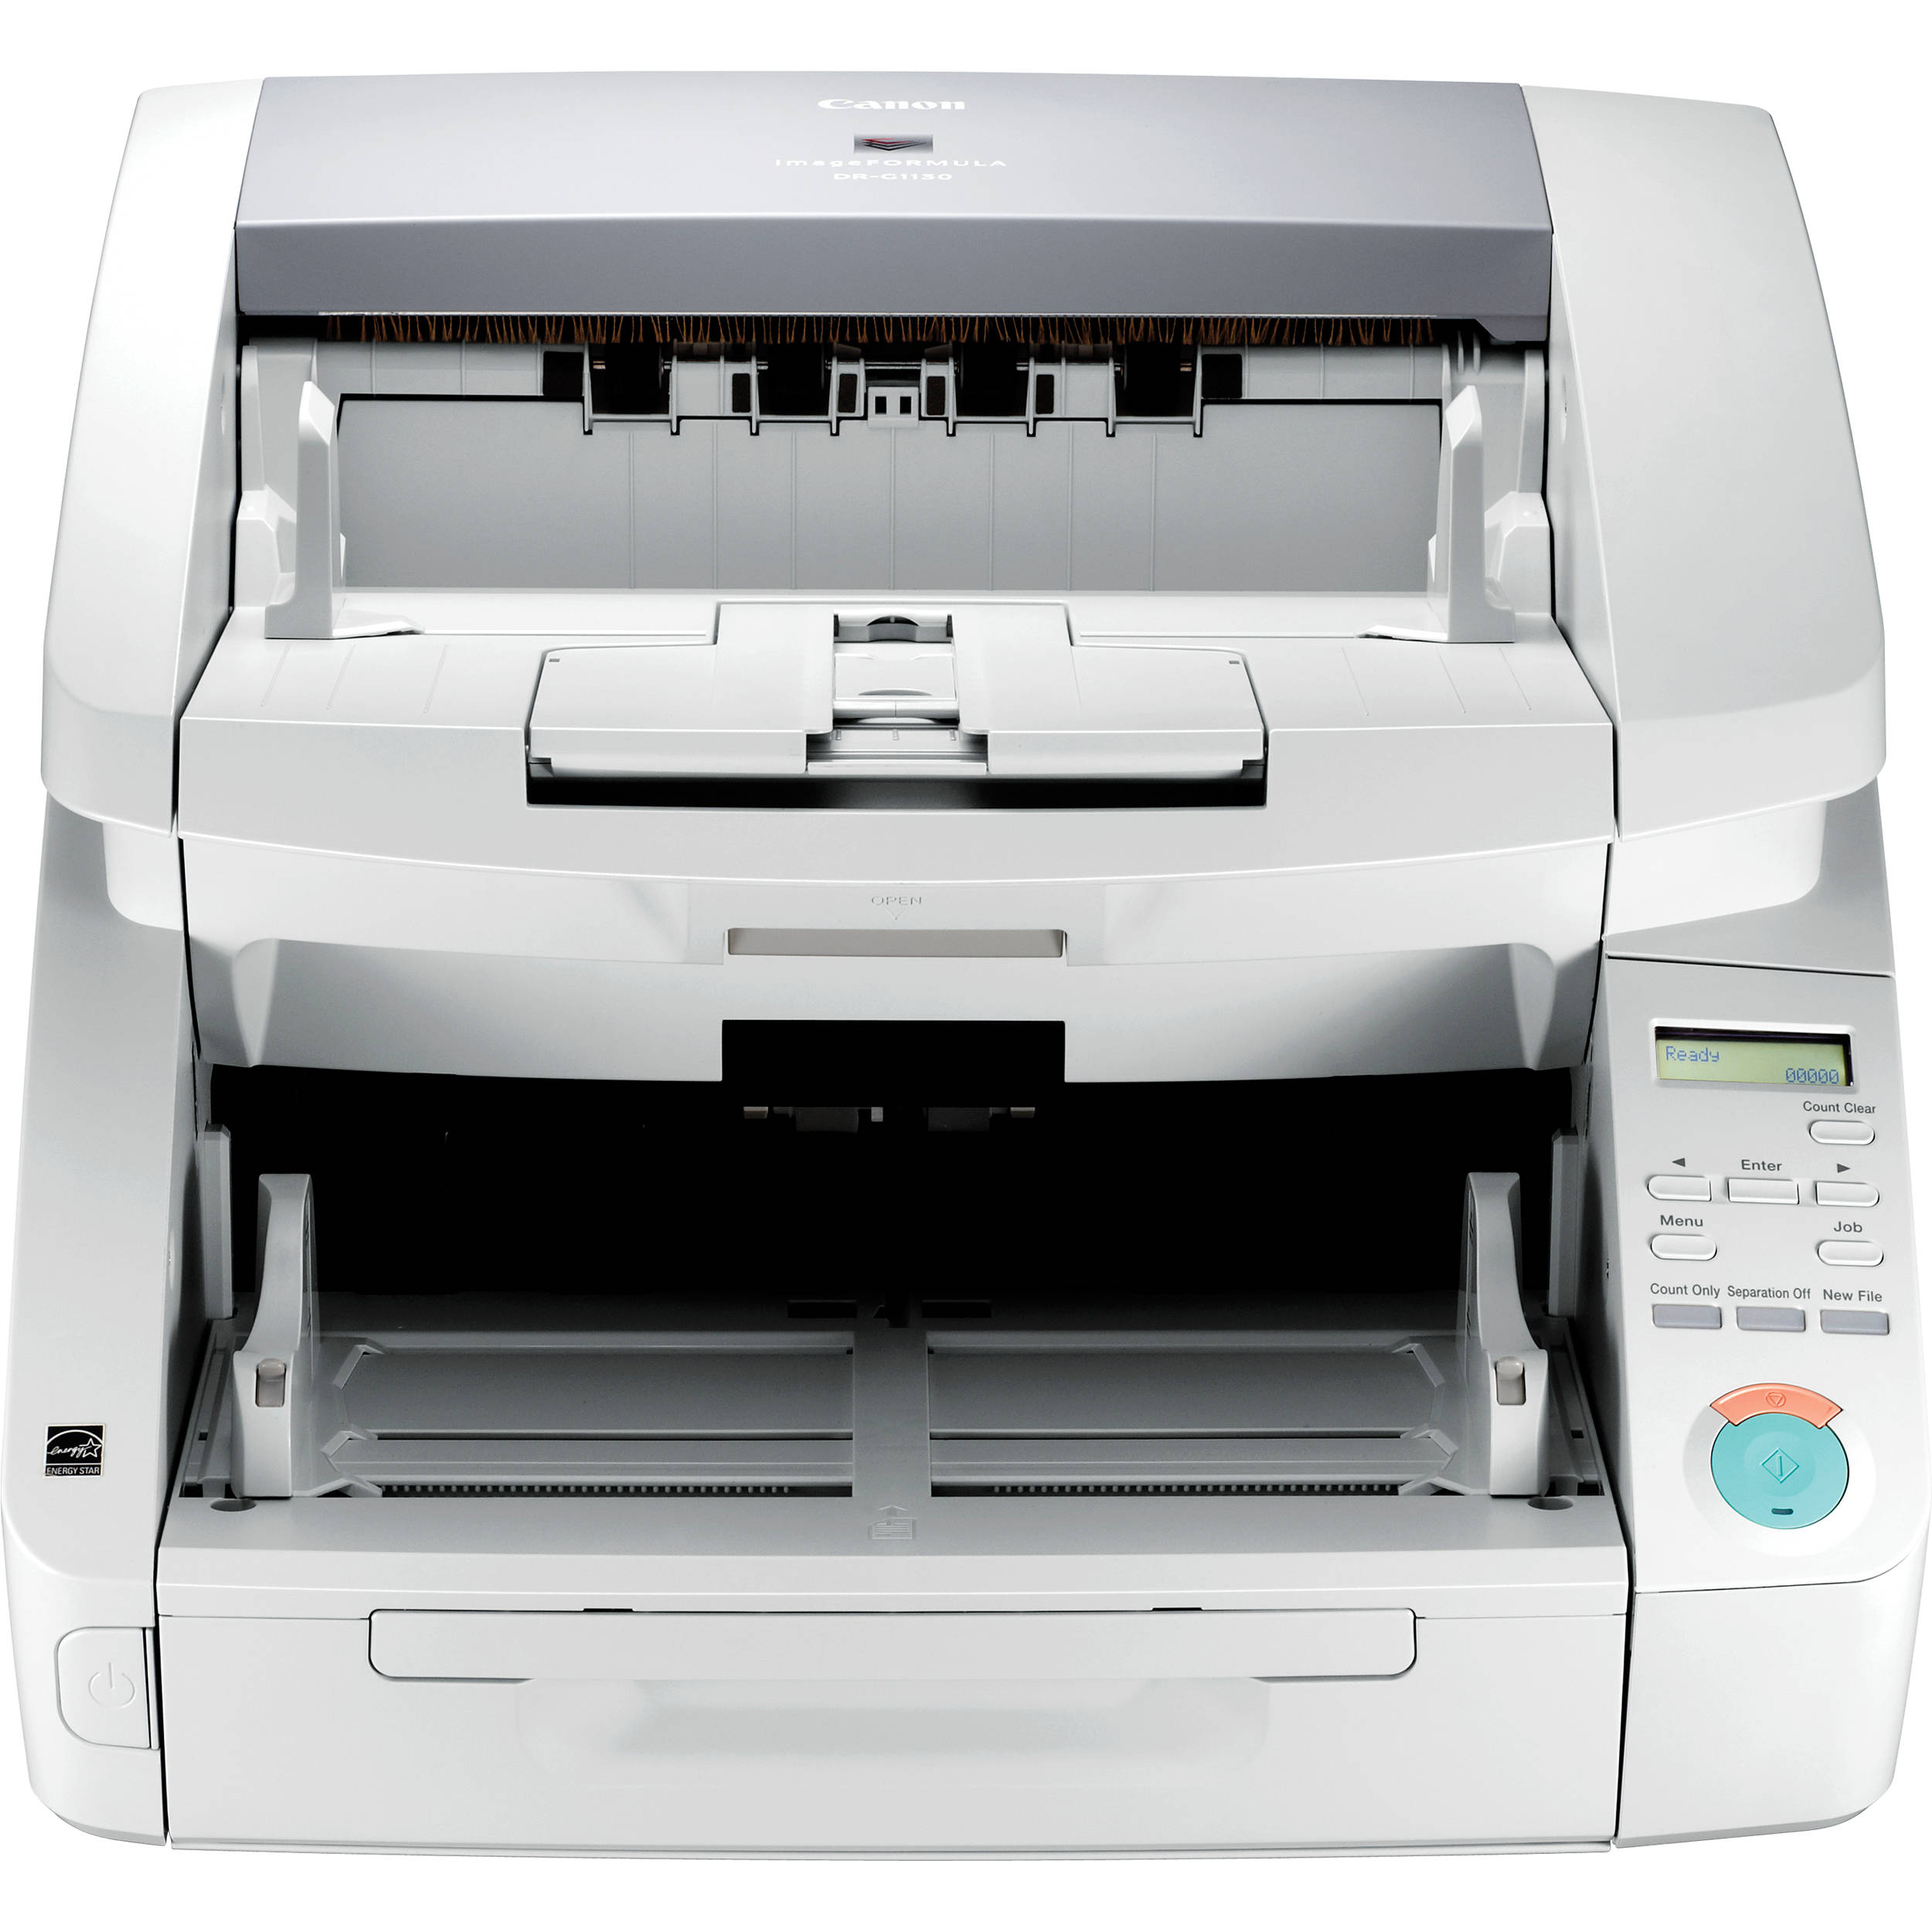 Canon Imageformula Dr G1130 Production Document Scanner